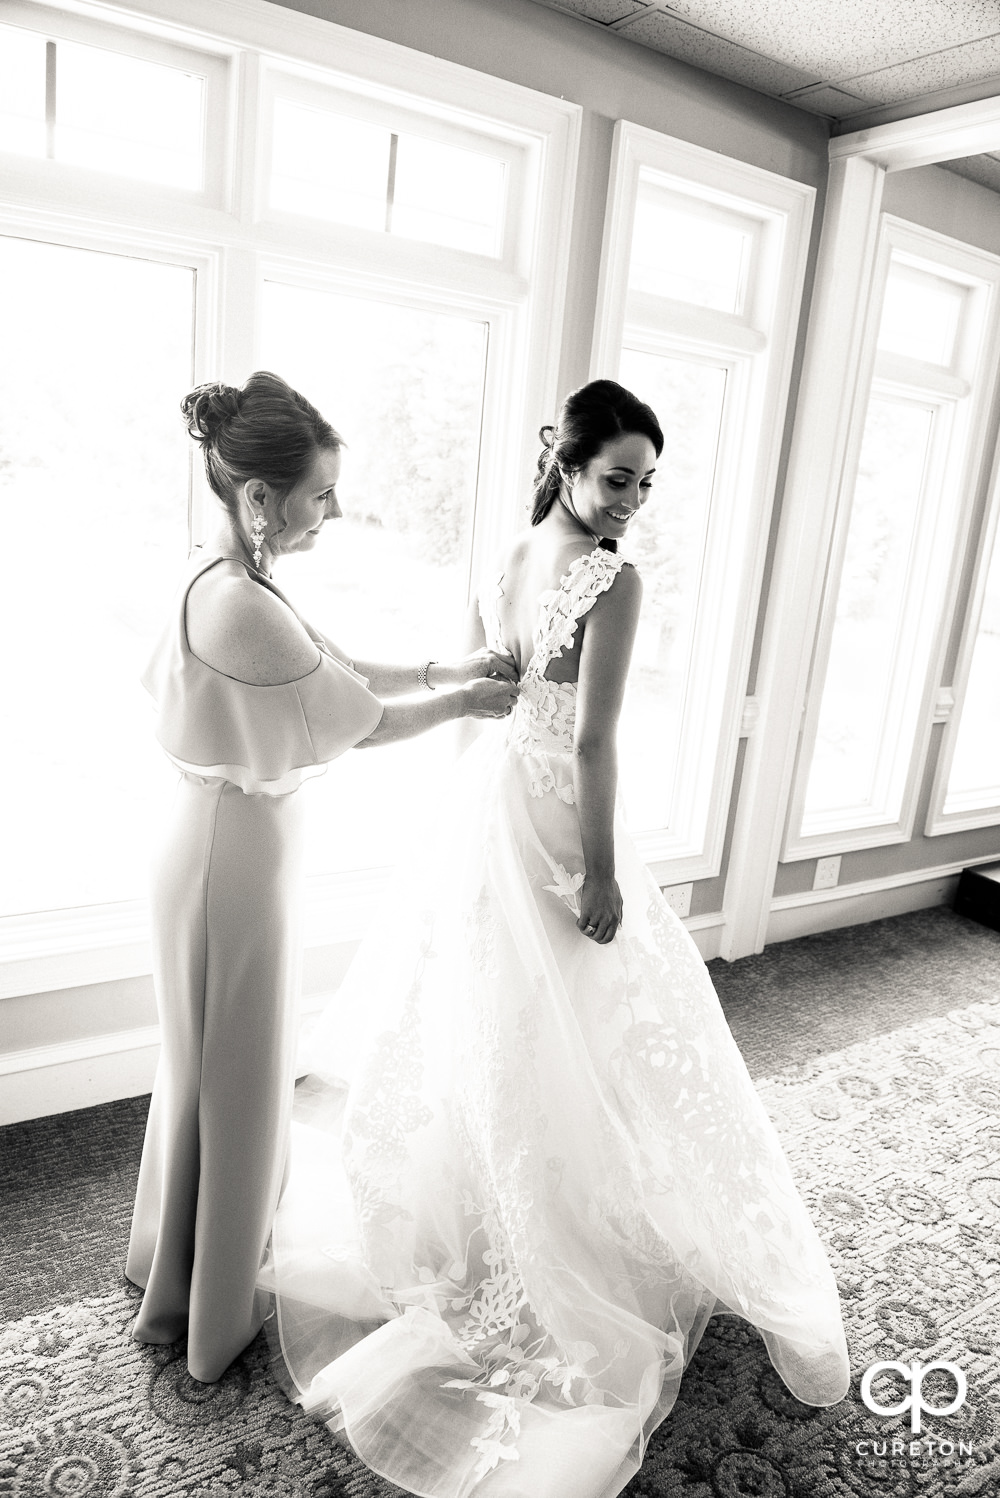 Bride's mom helping her into her wedding dress.